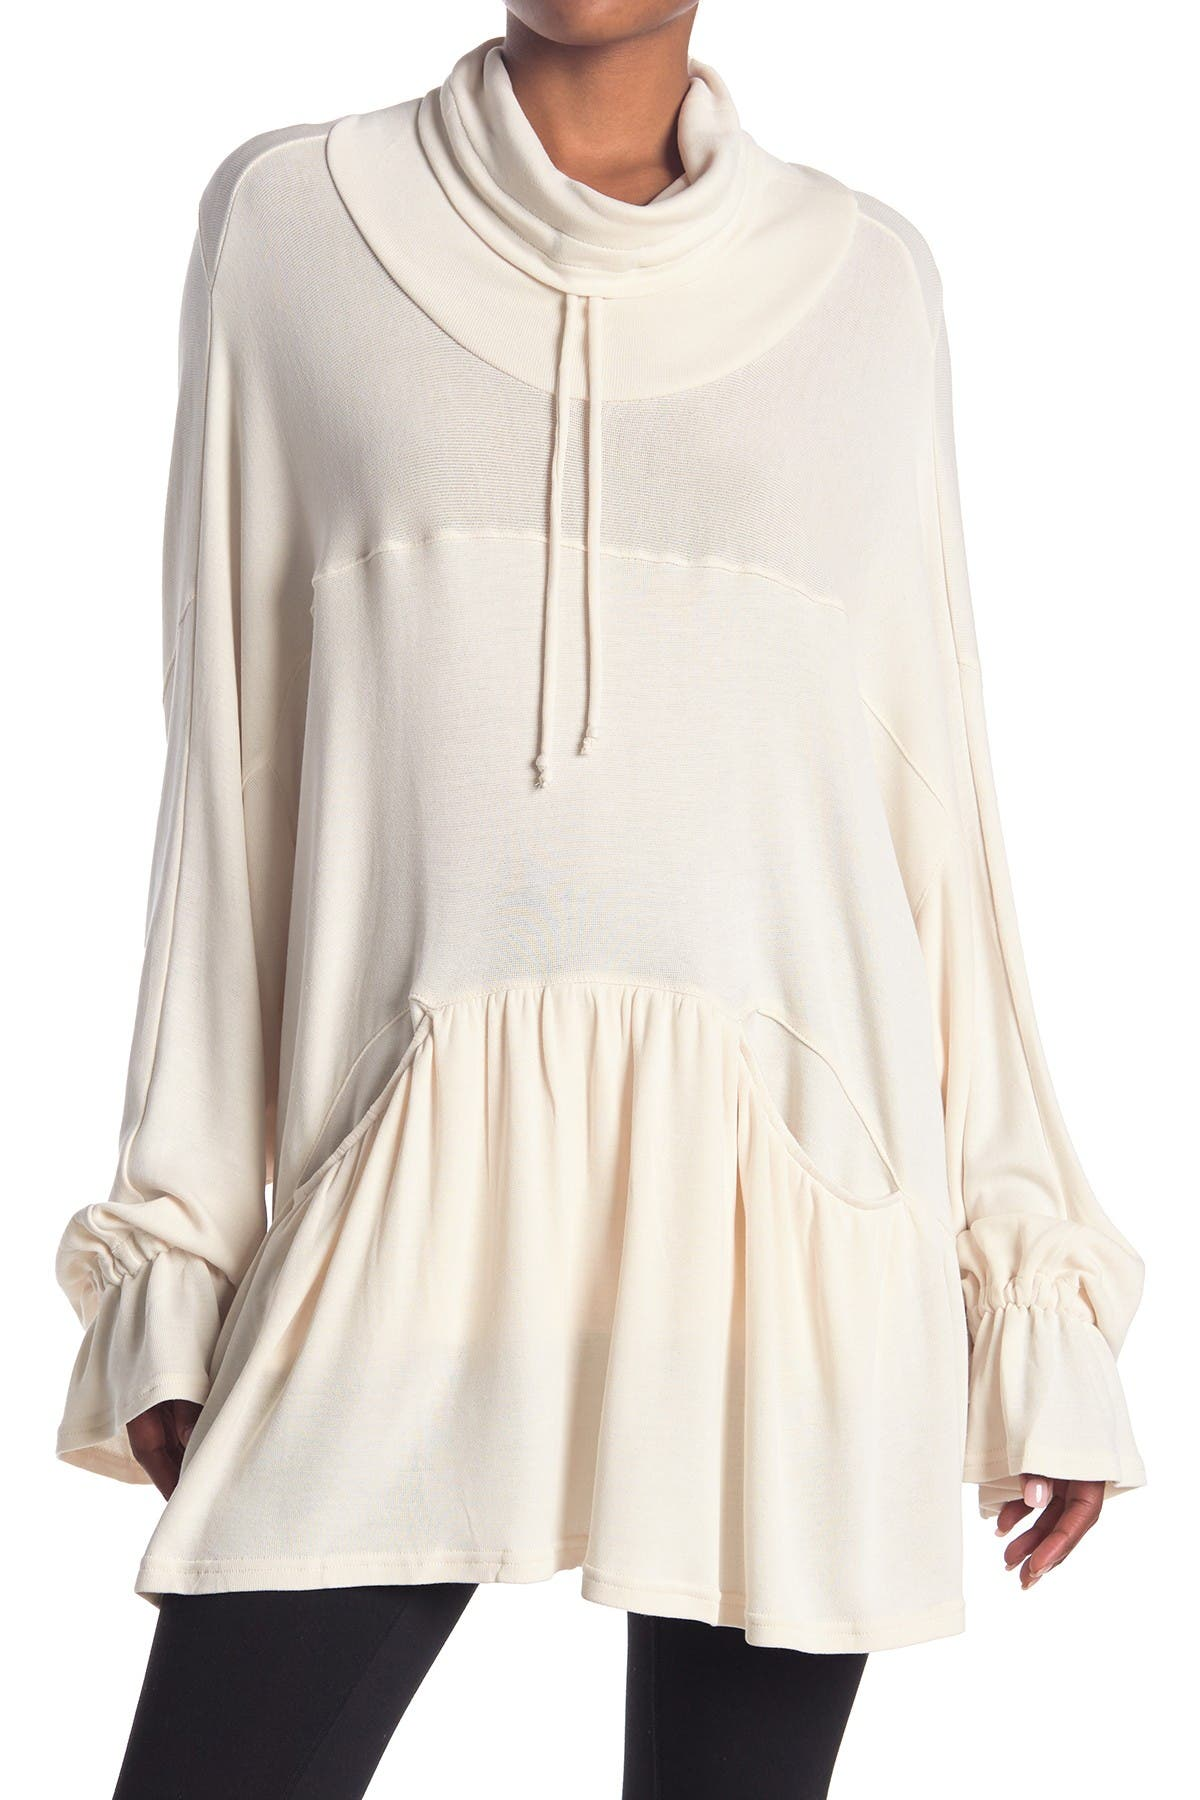 Image of Free People Early Riser Sweater